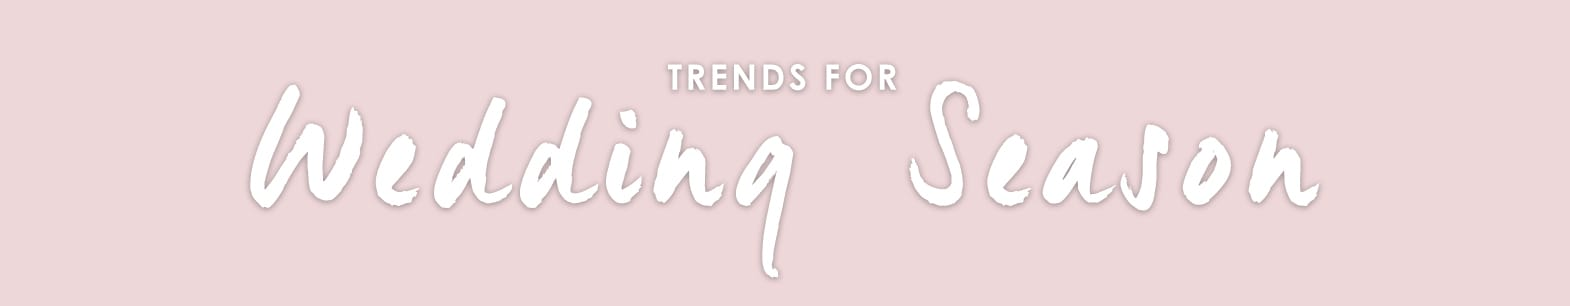 View our collection of Wedding inspired trends >